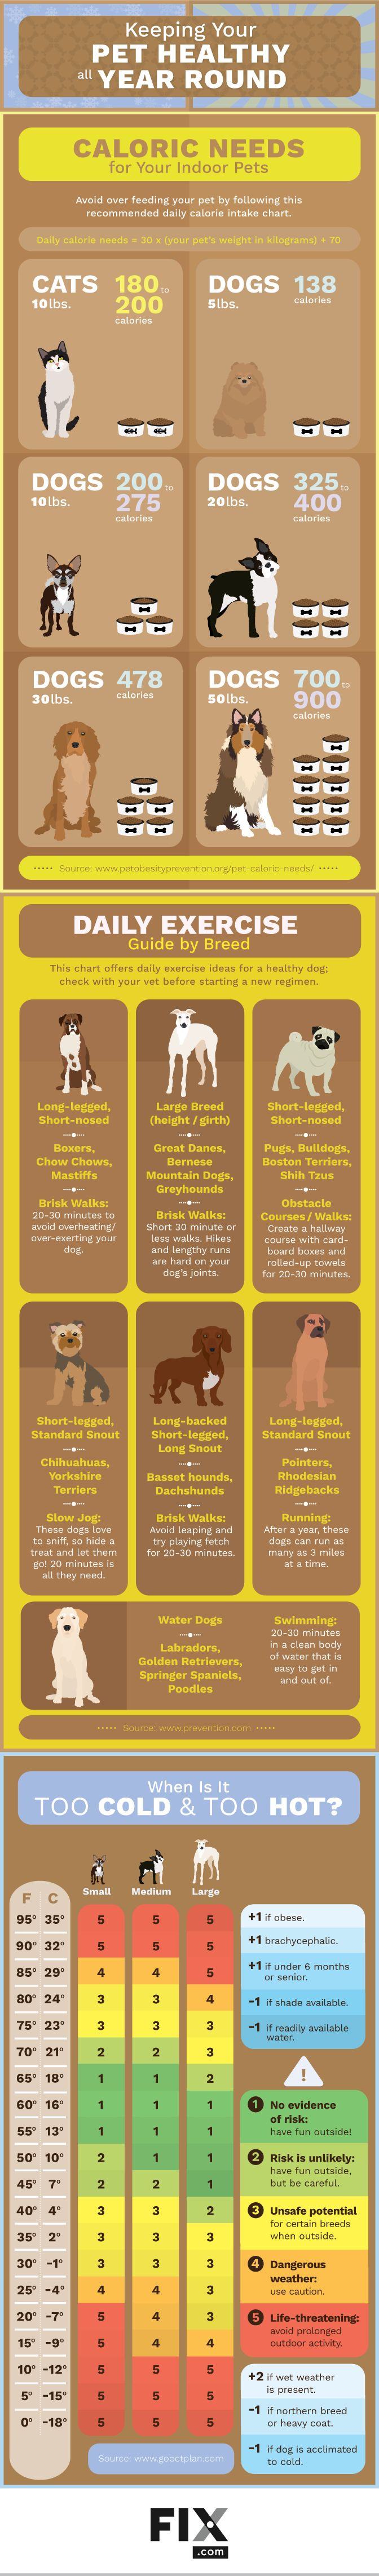 How to Keep Your Pet Healthy All Year Round #Infographic #Animals #Pets